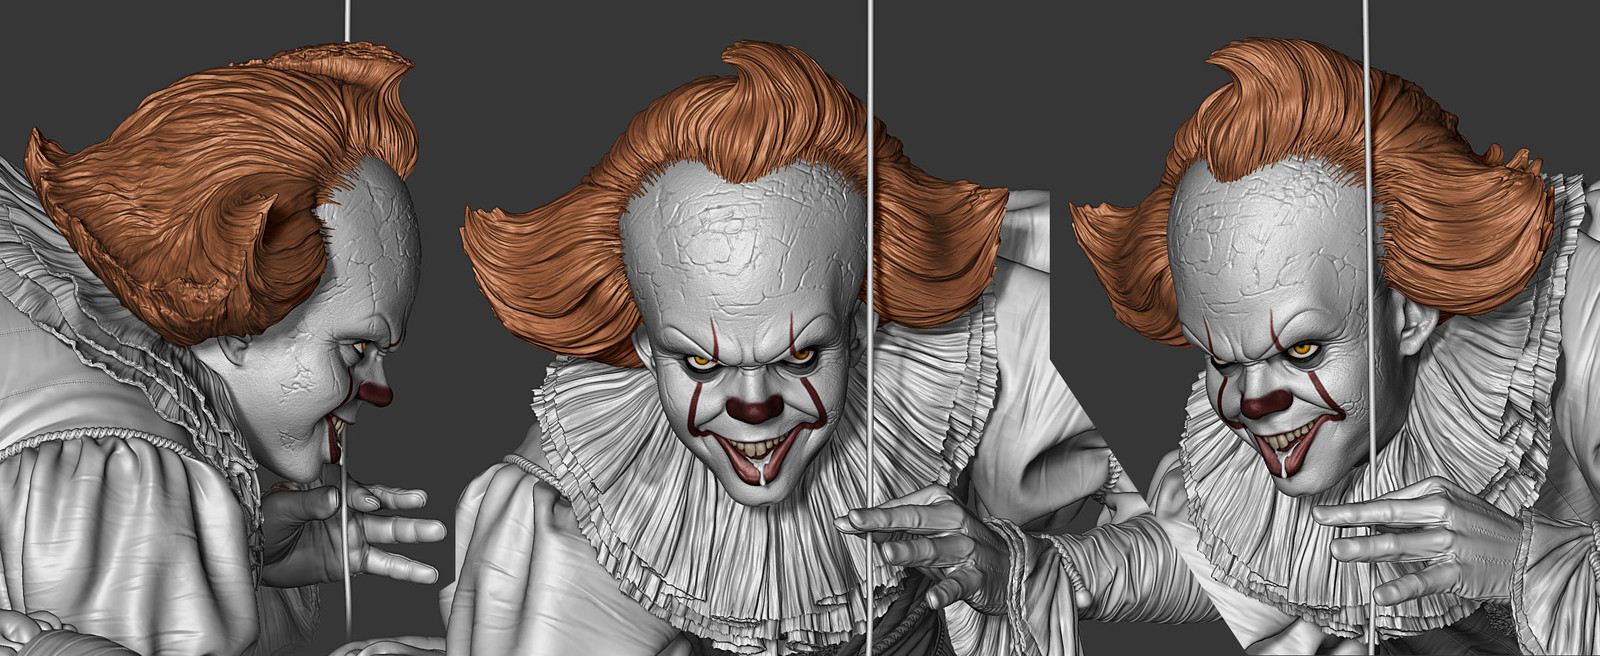 IT's Pennywise - Tweeterhead and Studio ADI